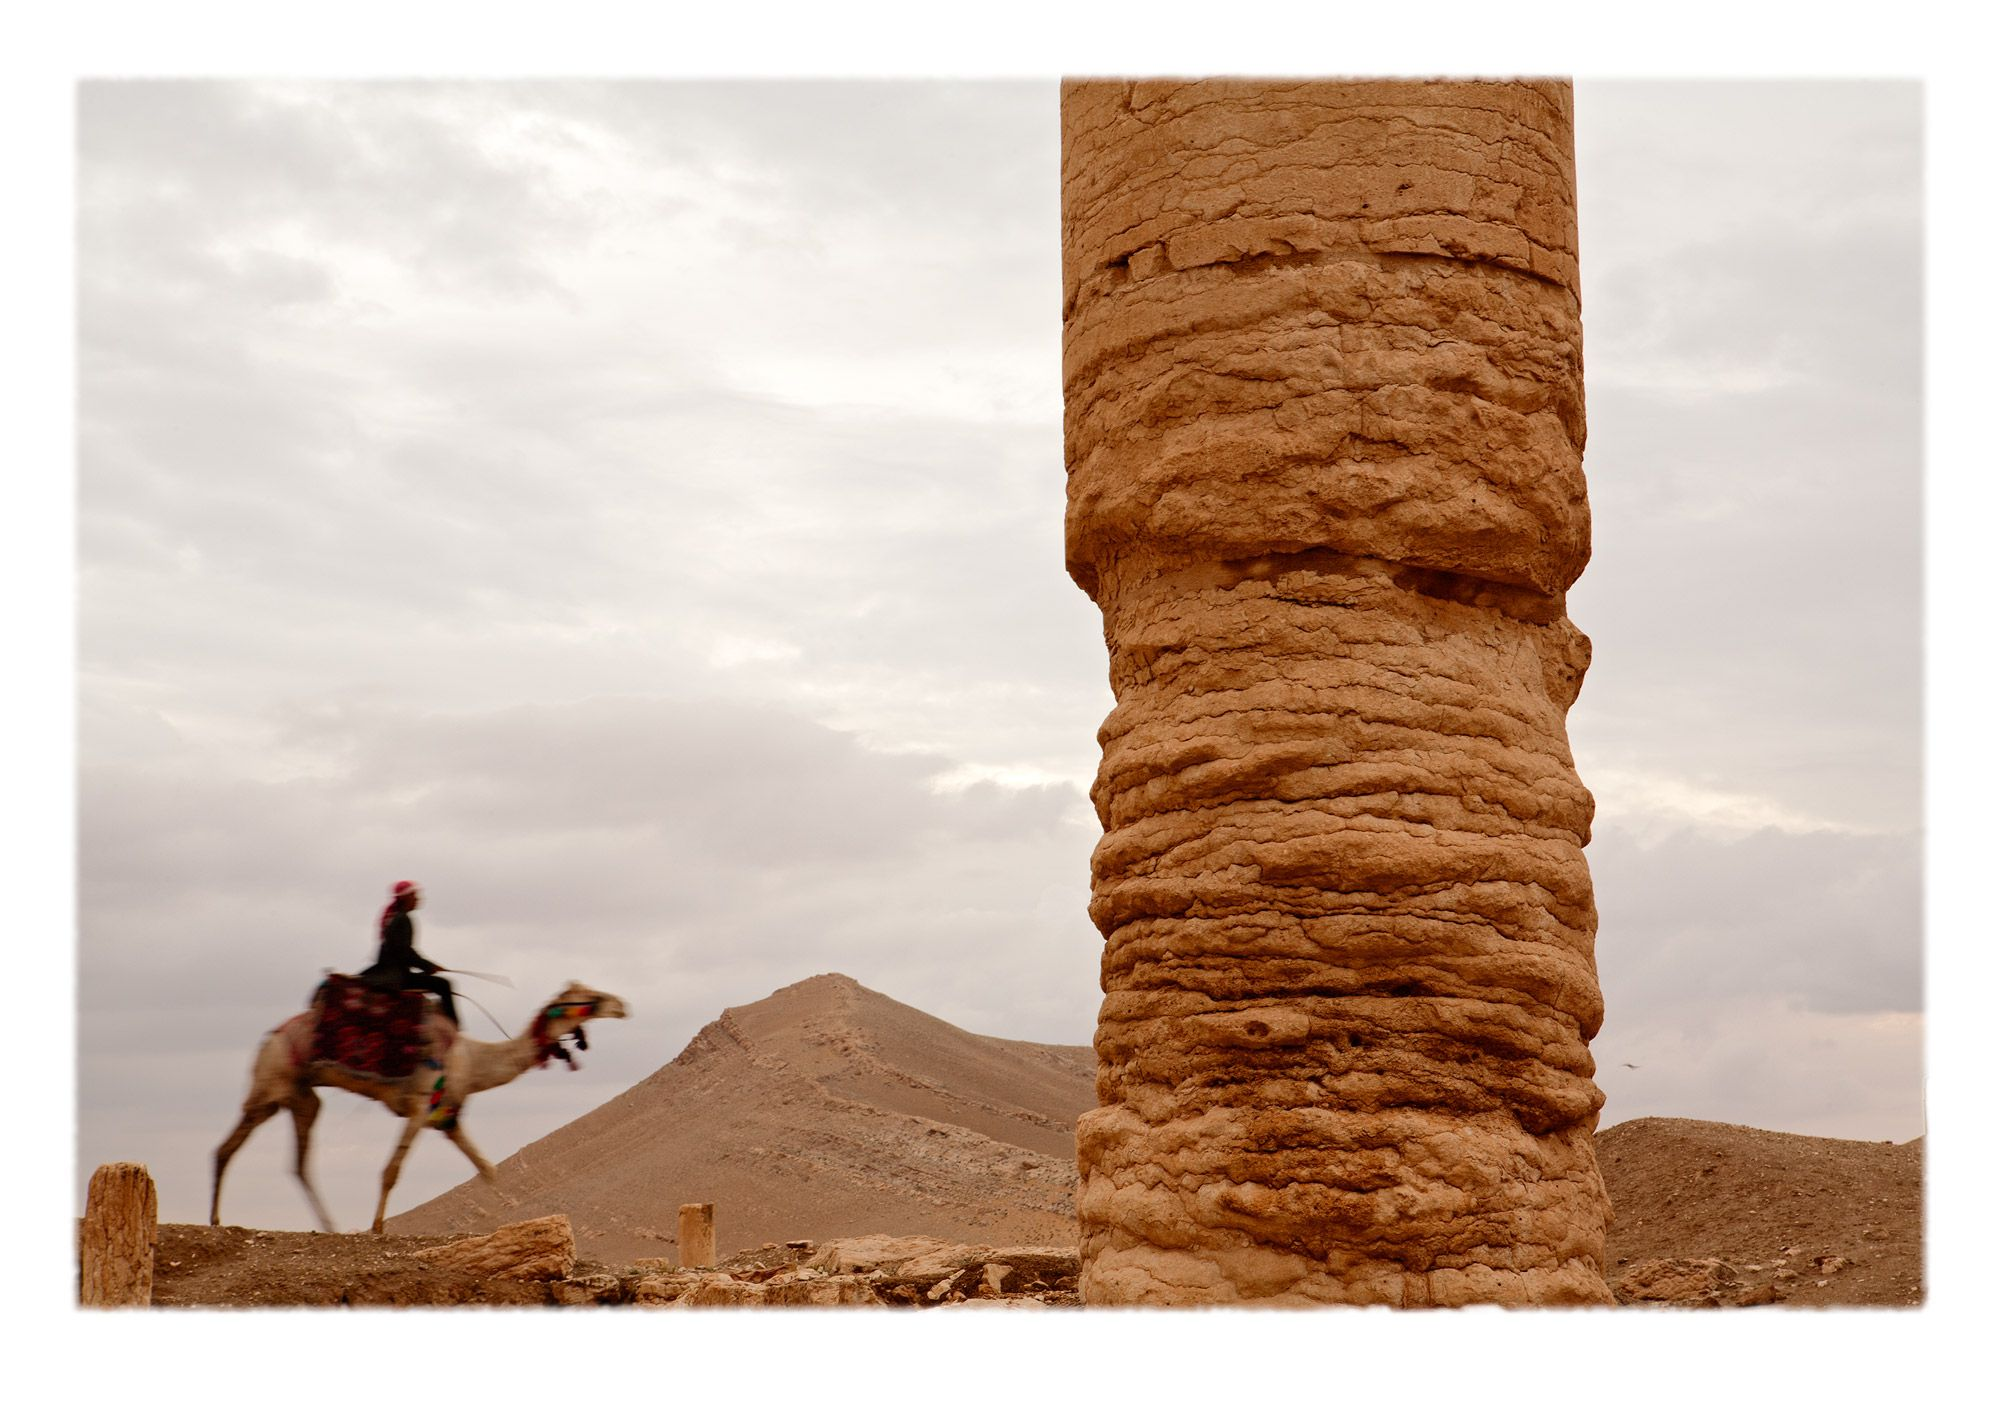 Dessicated windblown sandblasted and expressively eroded column behind which a man rides a colorfully bedecked camel. The tones and textures of erosion on once glorious specimens of  artisanal production are eloquent testaments to the relative nature of evanescence.